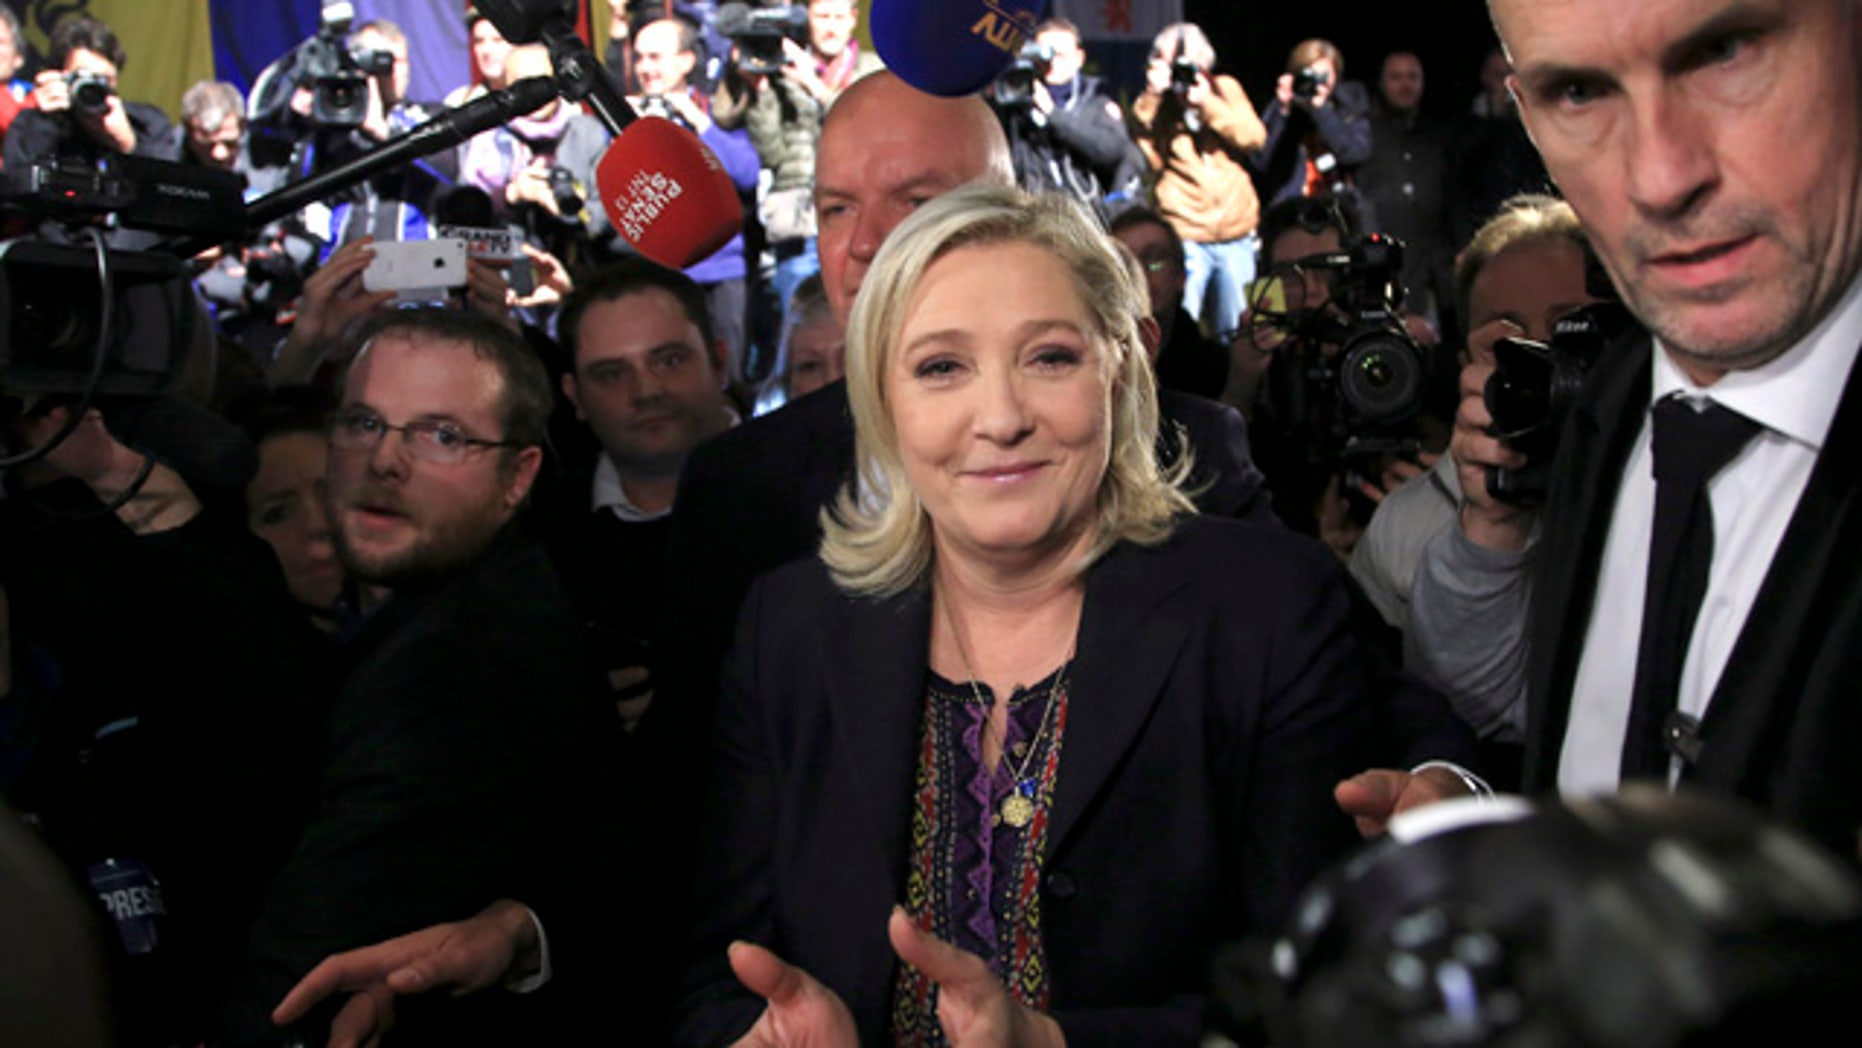 FILE - In this Dec.13, 2015 file photo, National Front party leader Marine Le Pen leaves after the results of the second round of the regional elections in Henin-Beaumont, northern France. (AP Photo/Thibault Camus, File)